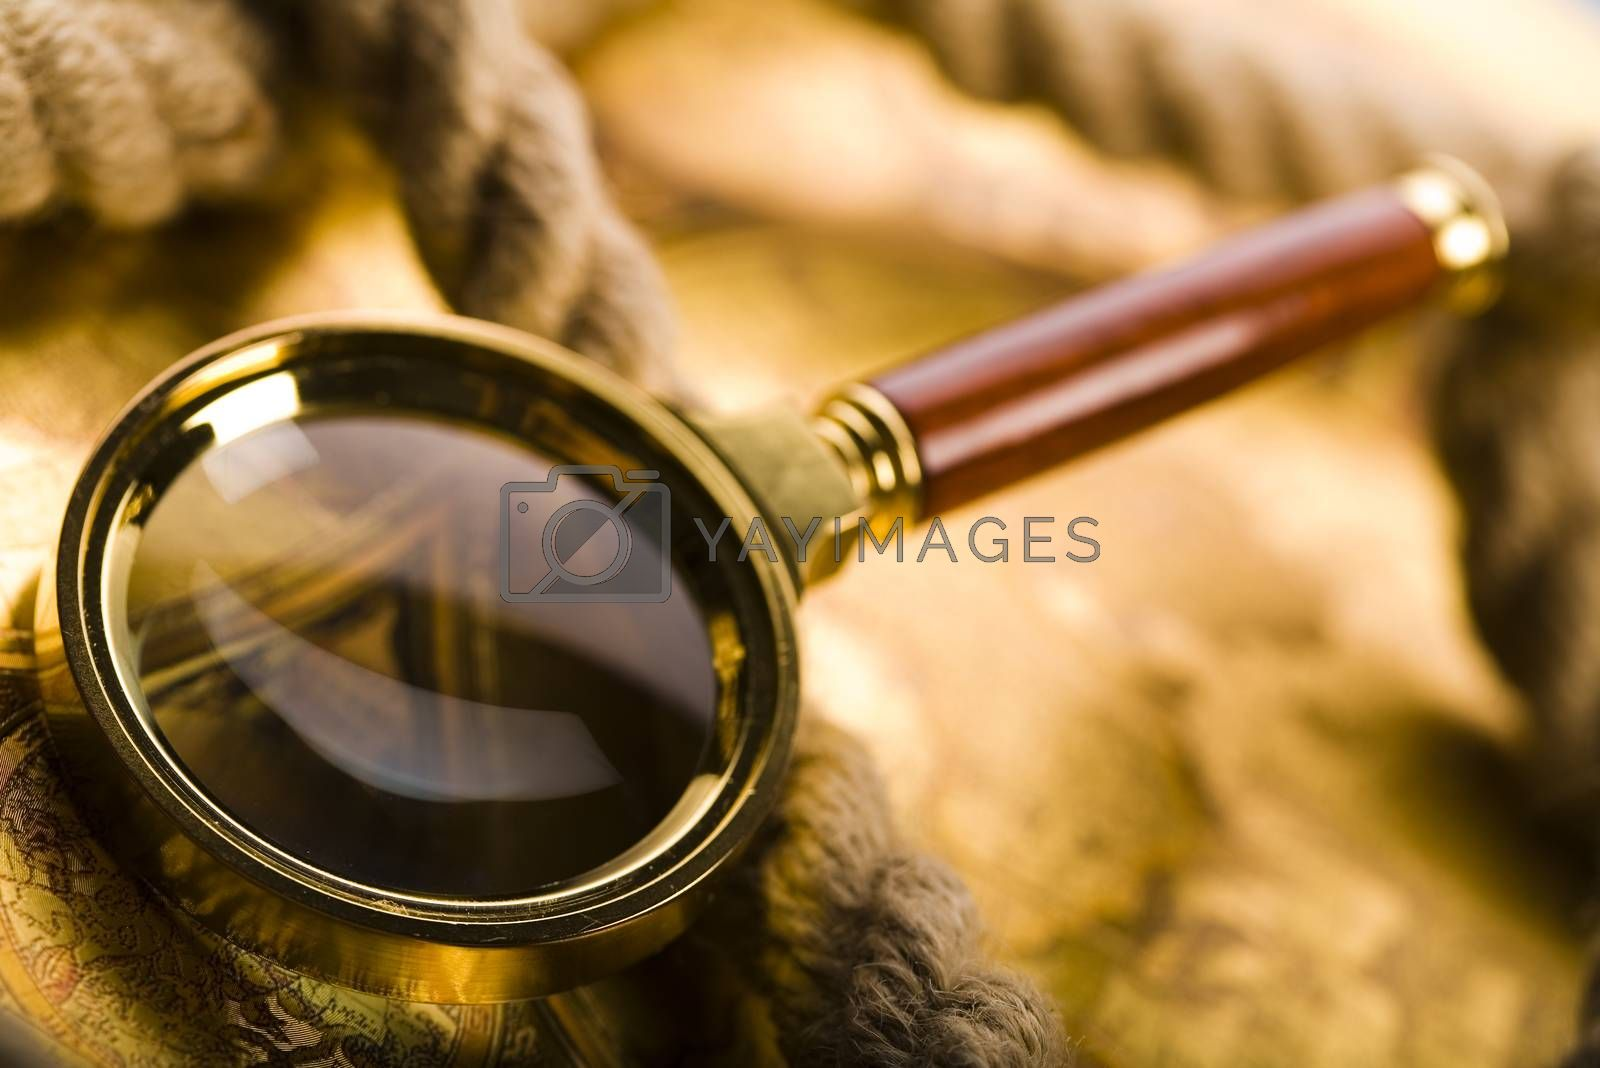 Traveling, magnifying glass and globe, ambient light travel theme by JanPietruszka